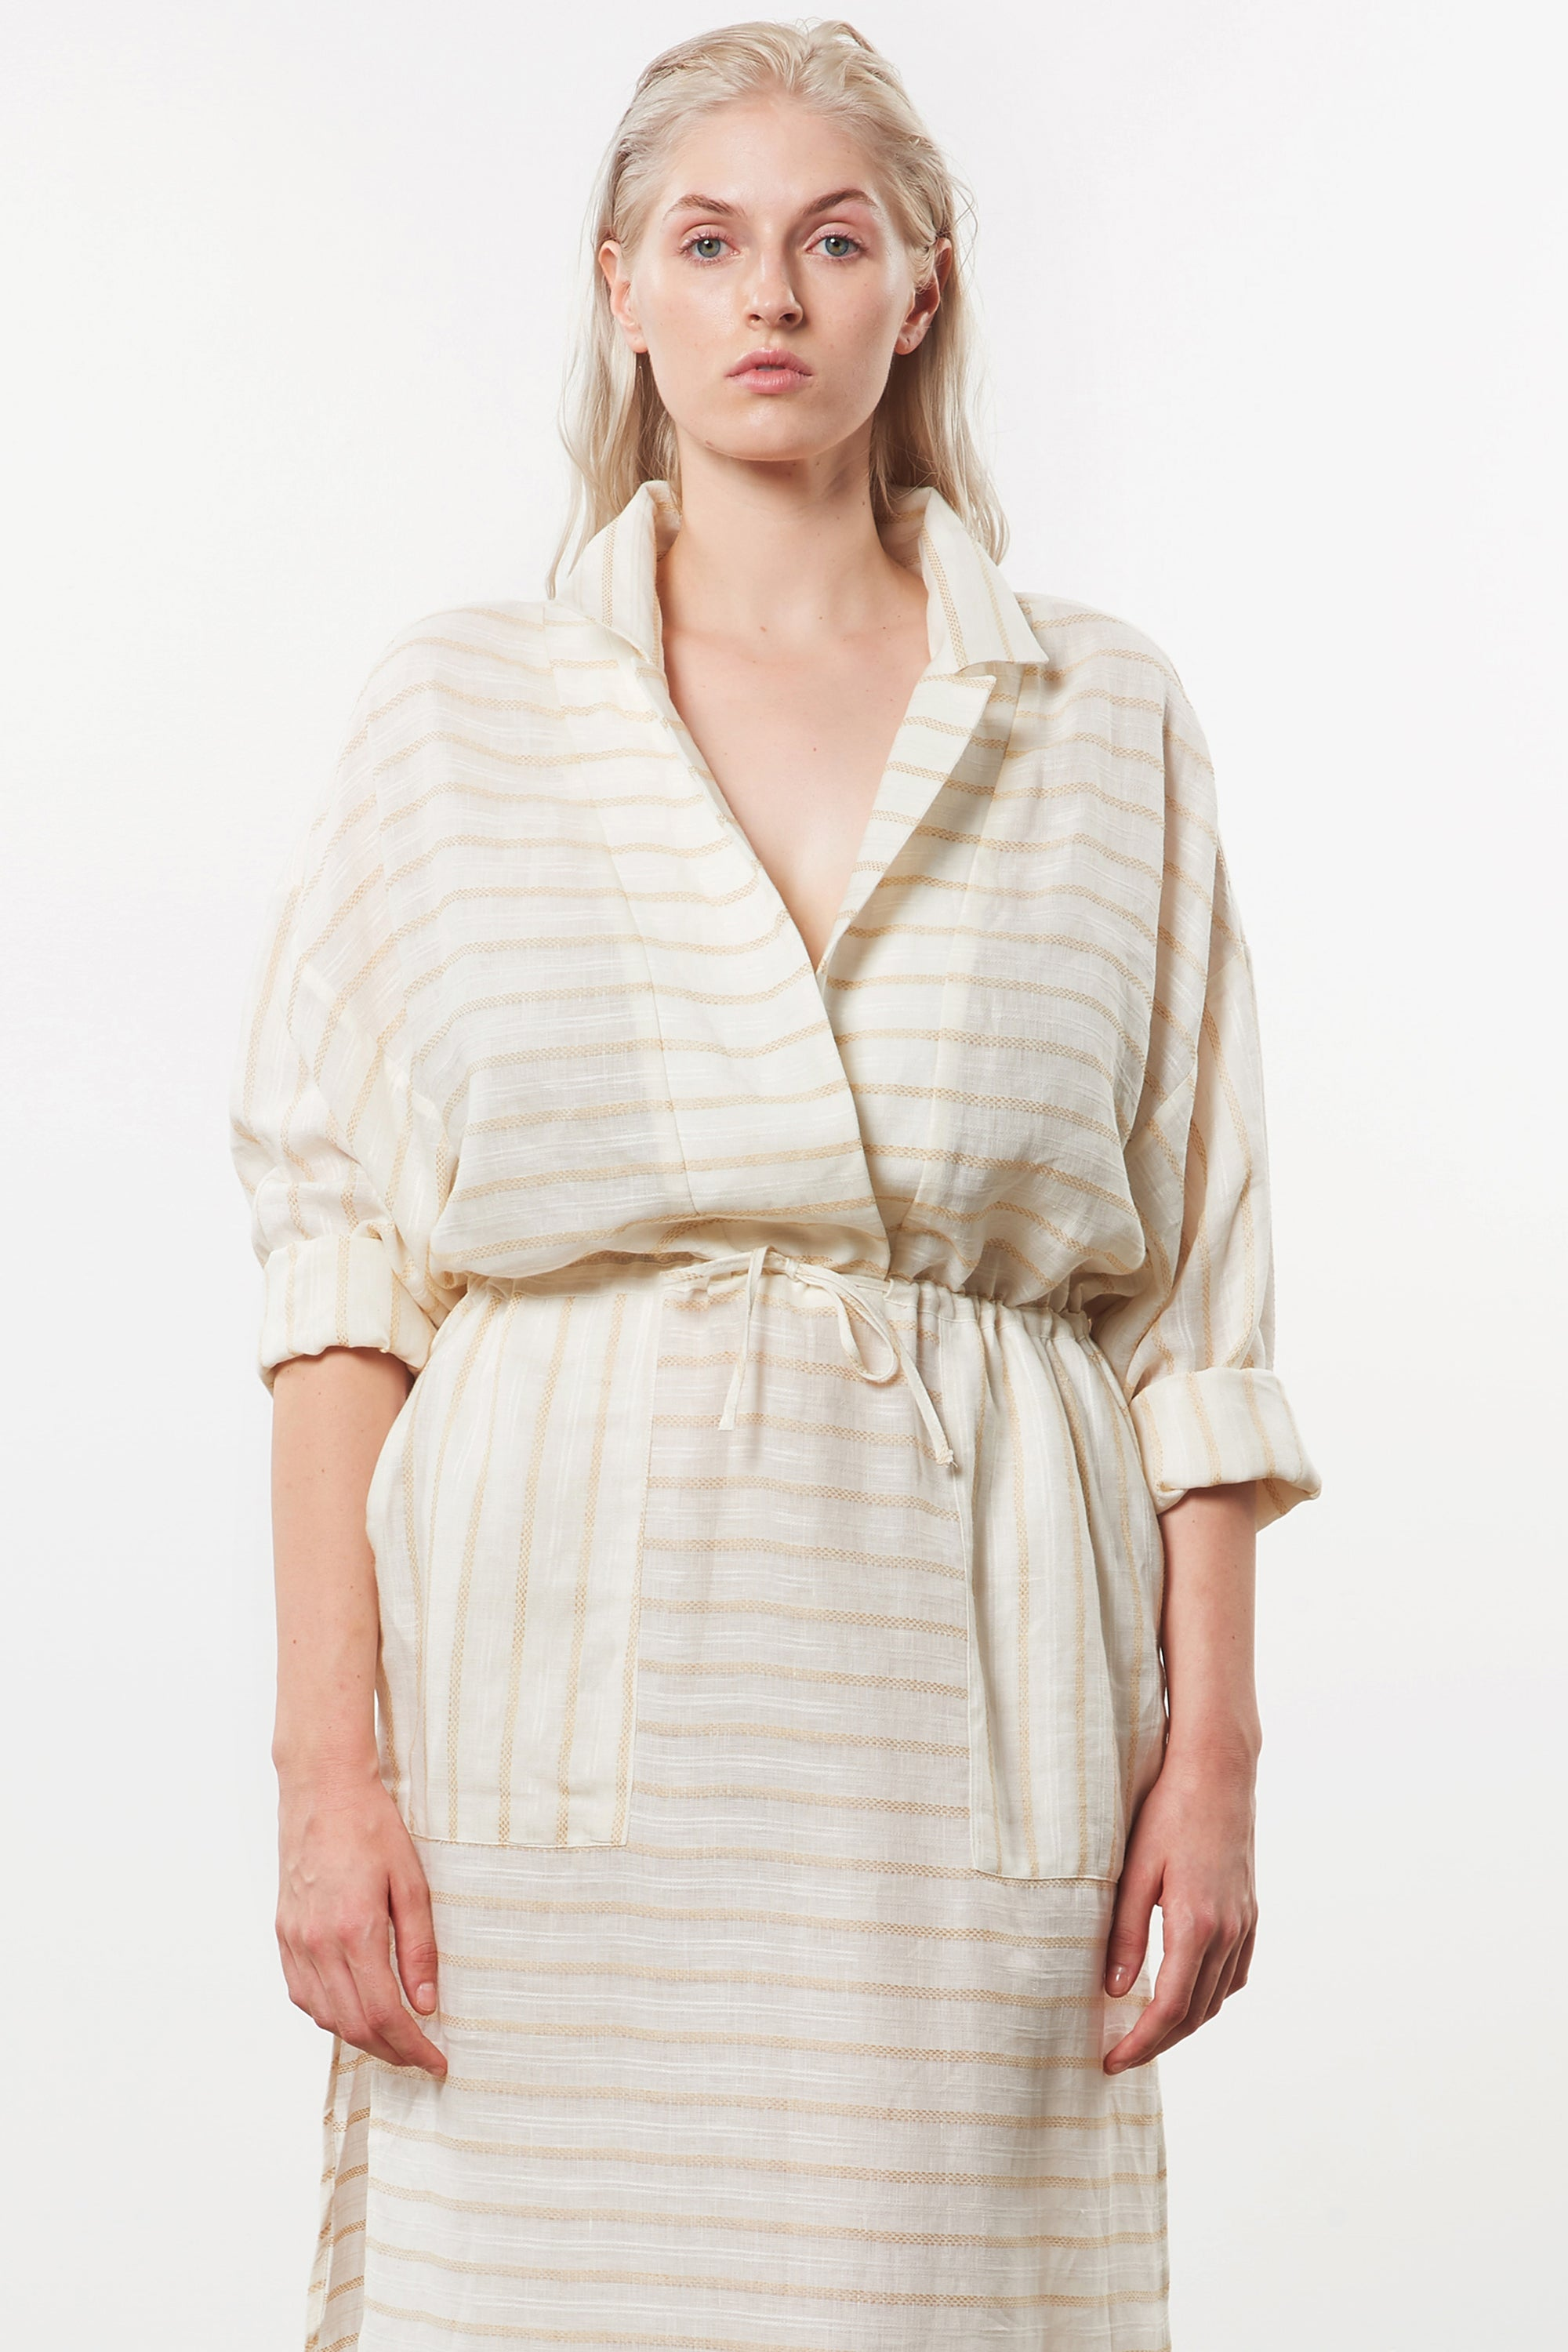 Mara Hoffman Extended  Diega Coverup Dress in Ivory linen TENCEL Lyocell blend (detail)